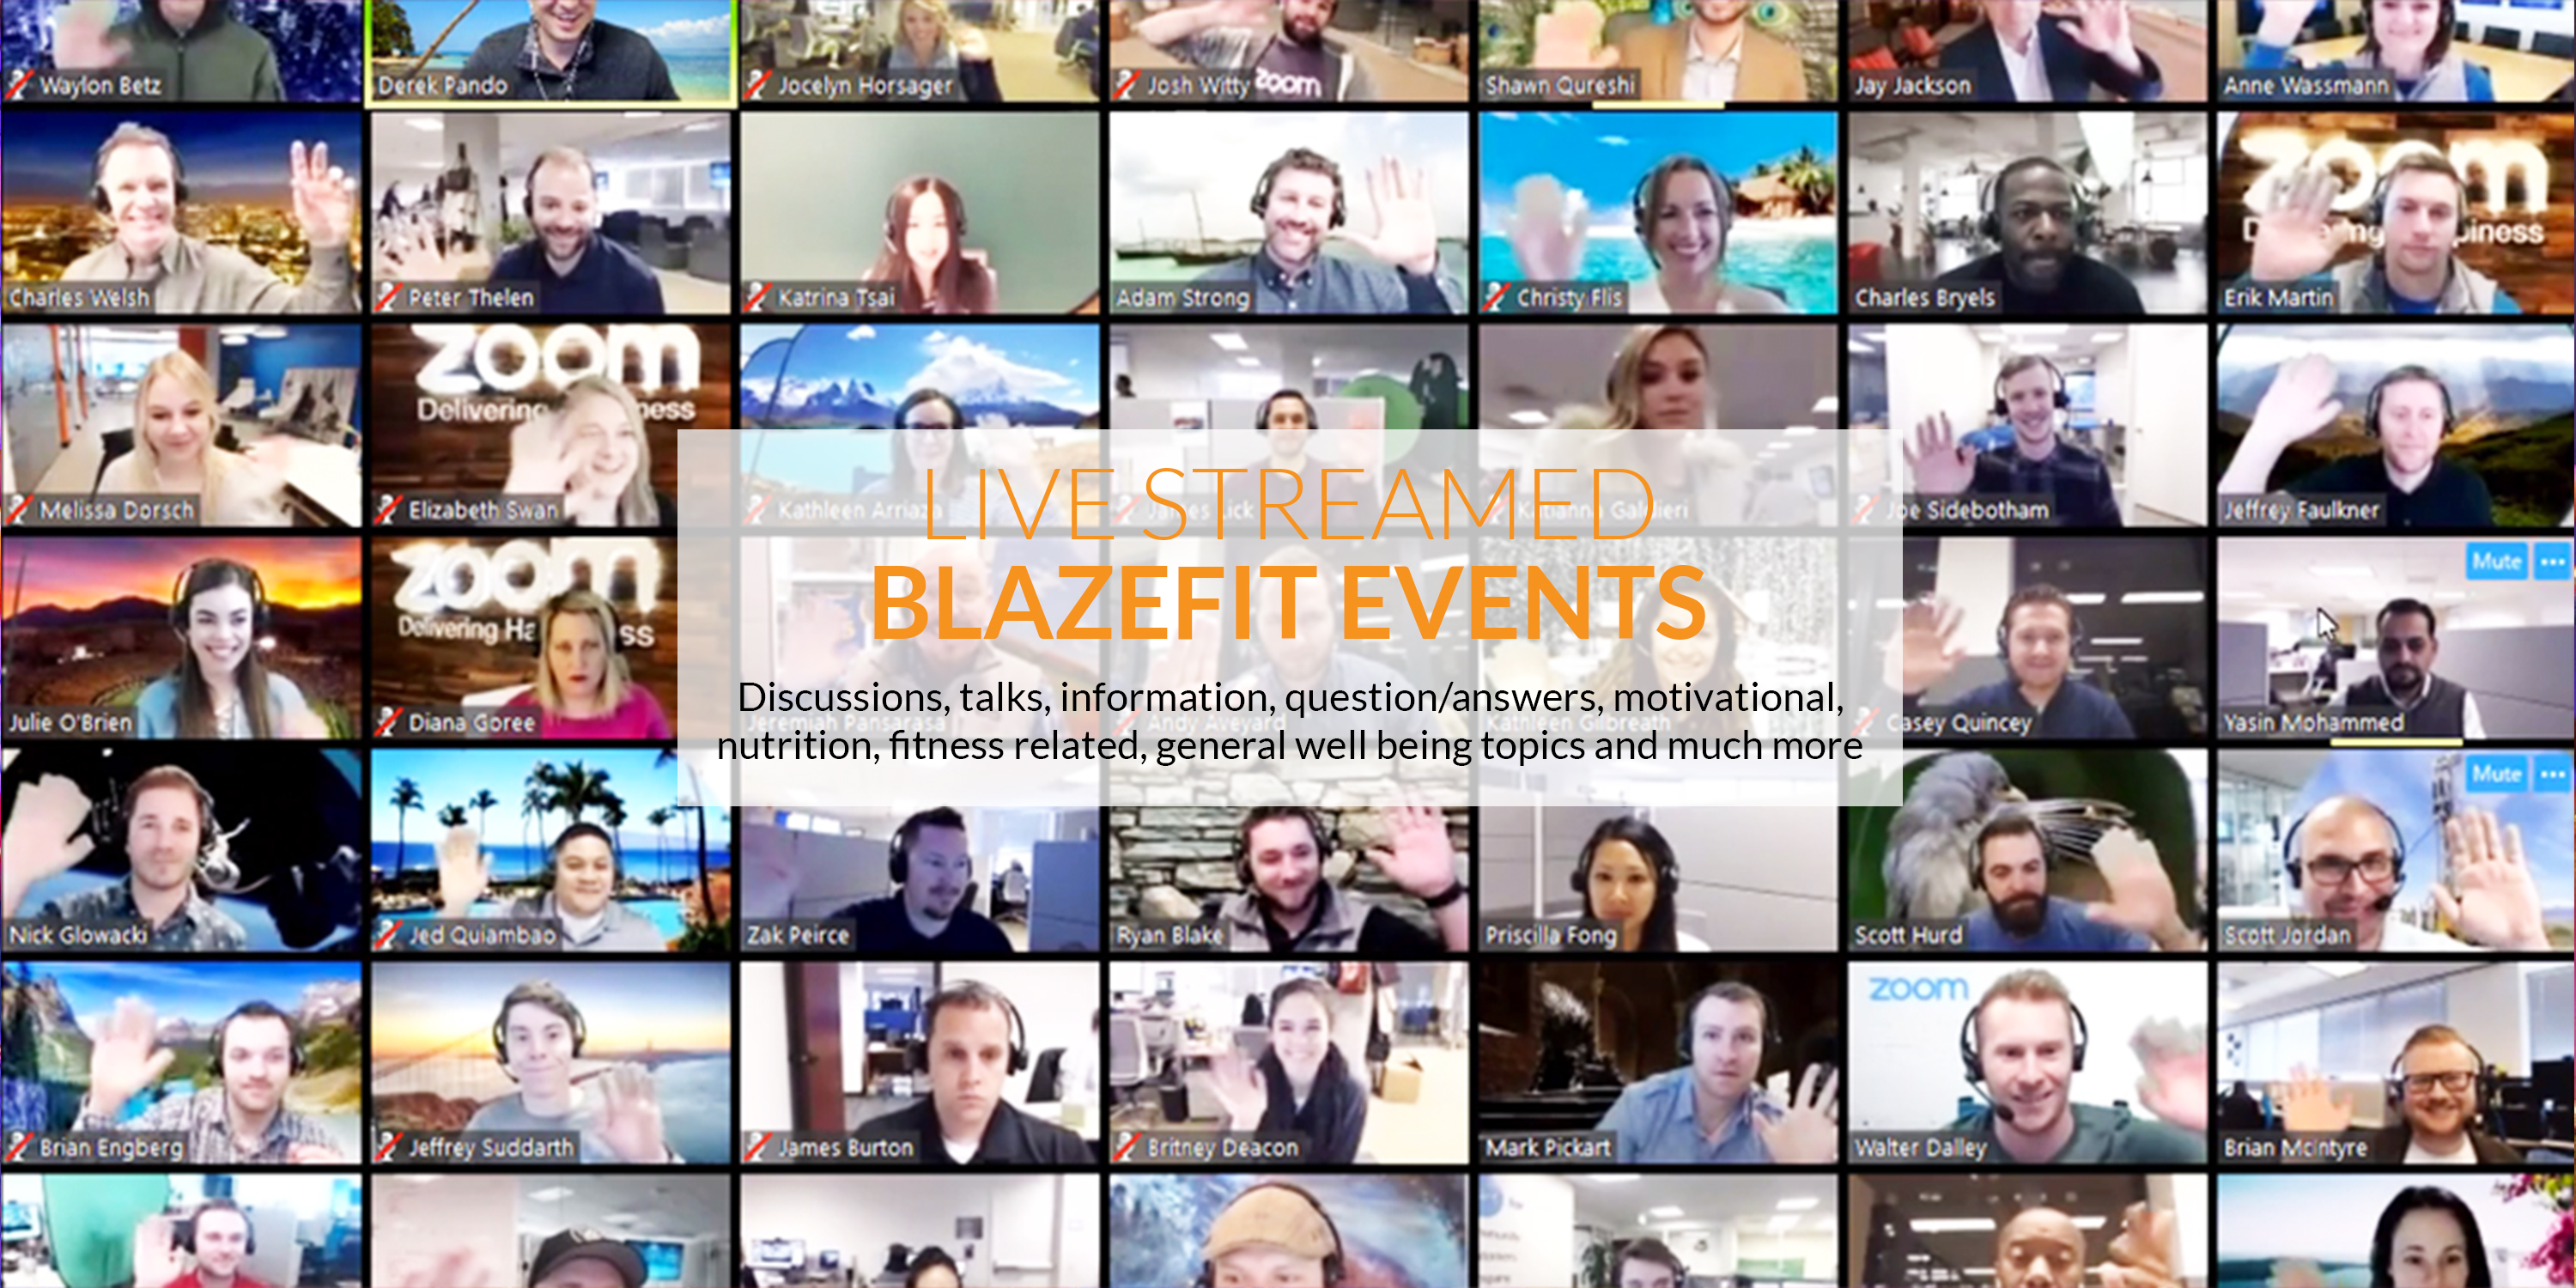 >BlazeFit events and well being talks